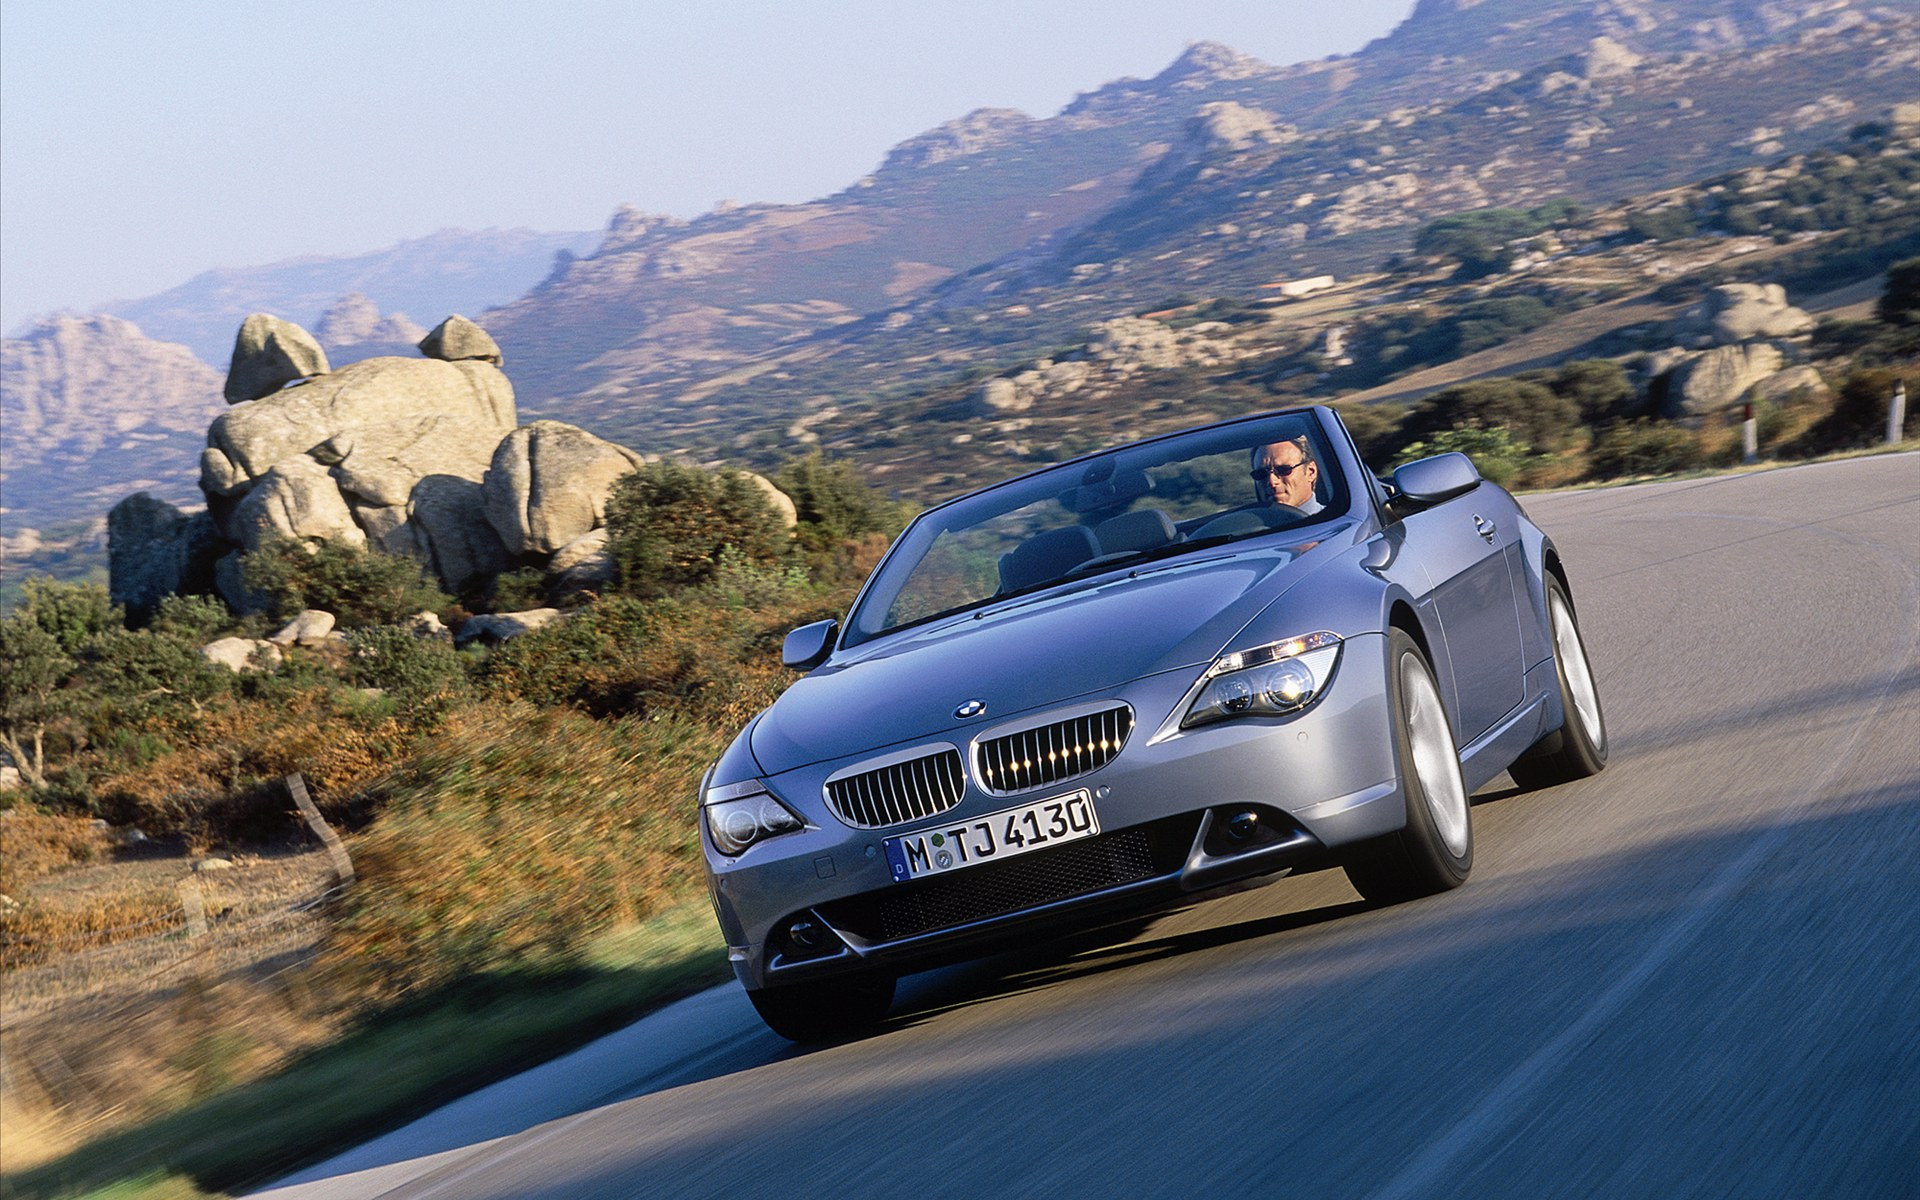 Bmw 3 series convertible front angle road  № 850470 загрузить